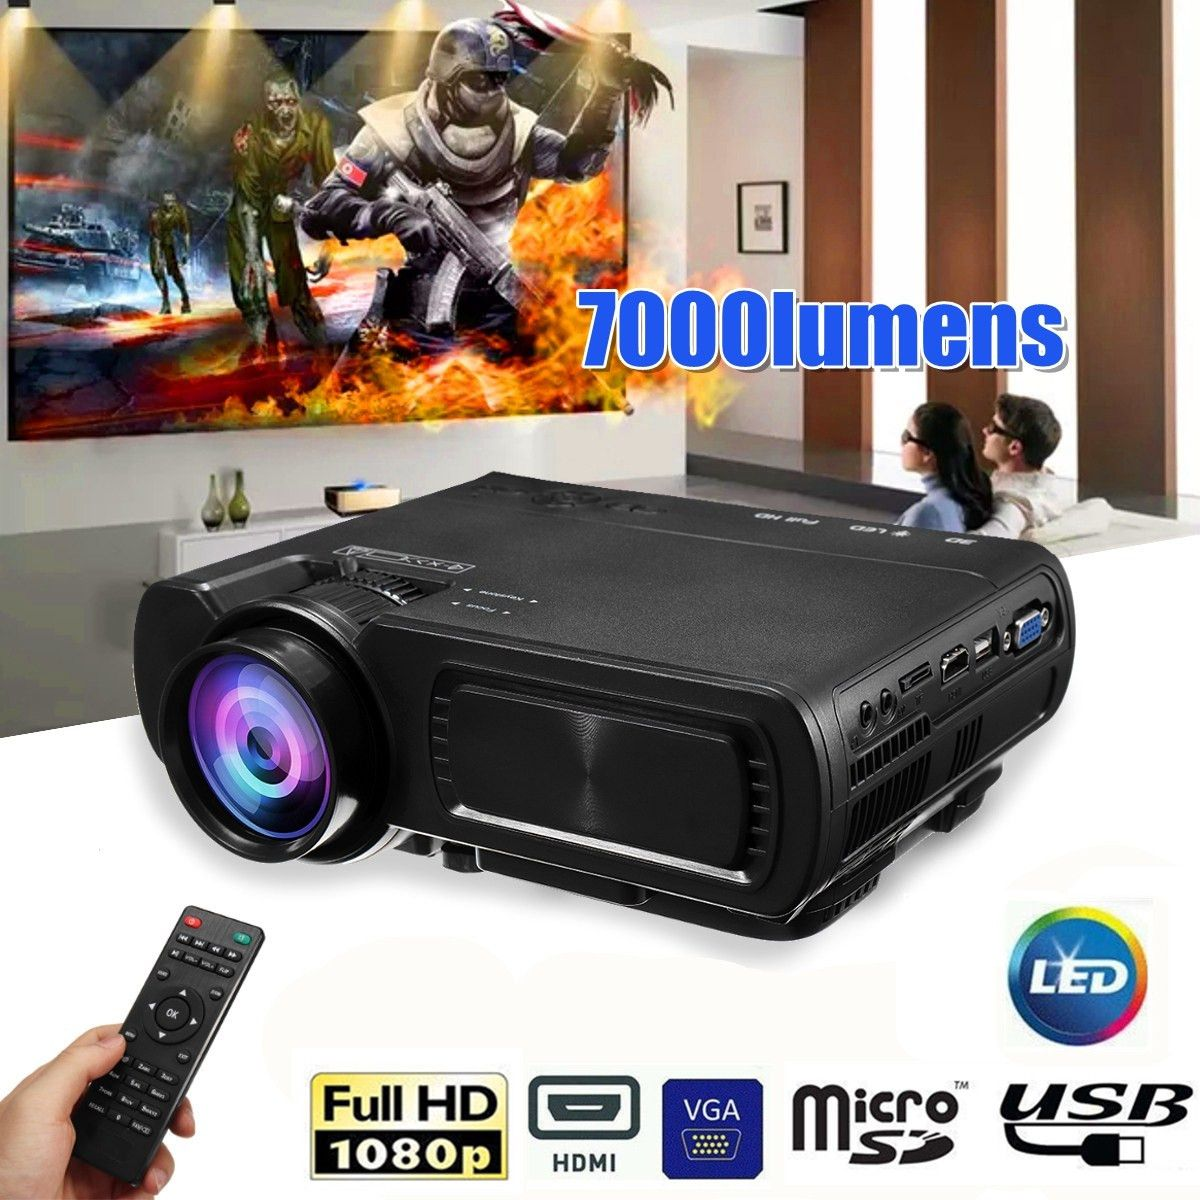 Samsung Beamer 7000lm Hd 1080p T5 Lcd Projector Beamer Usb Vga Hdmi Av Tf For